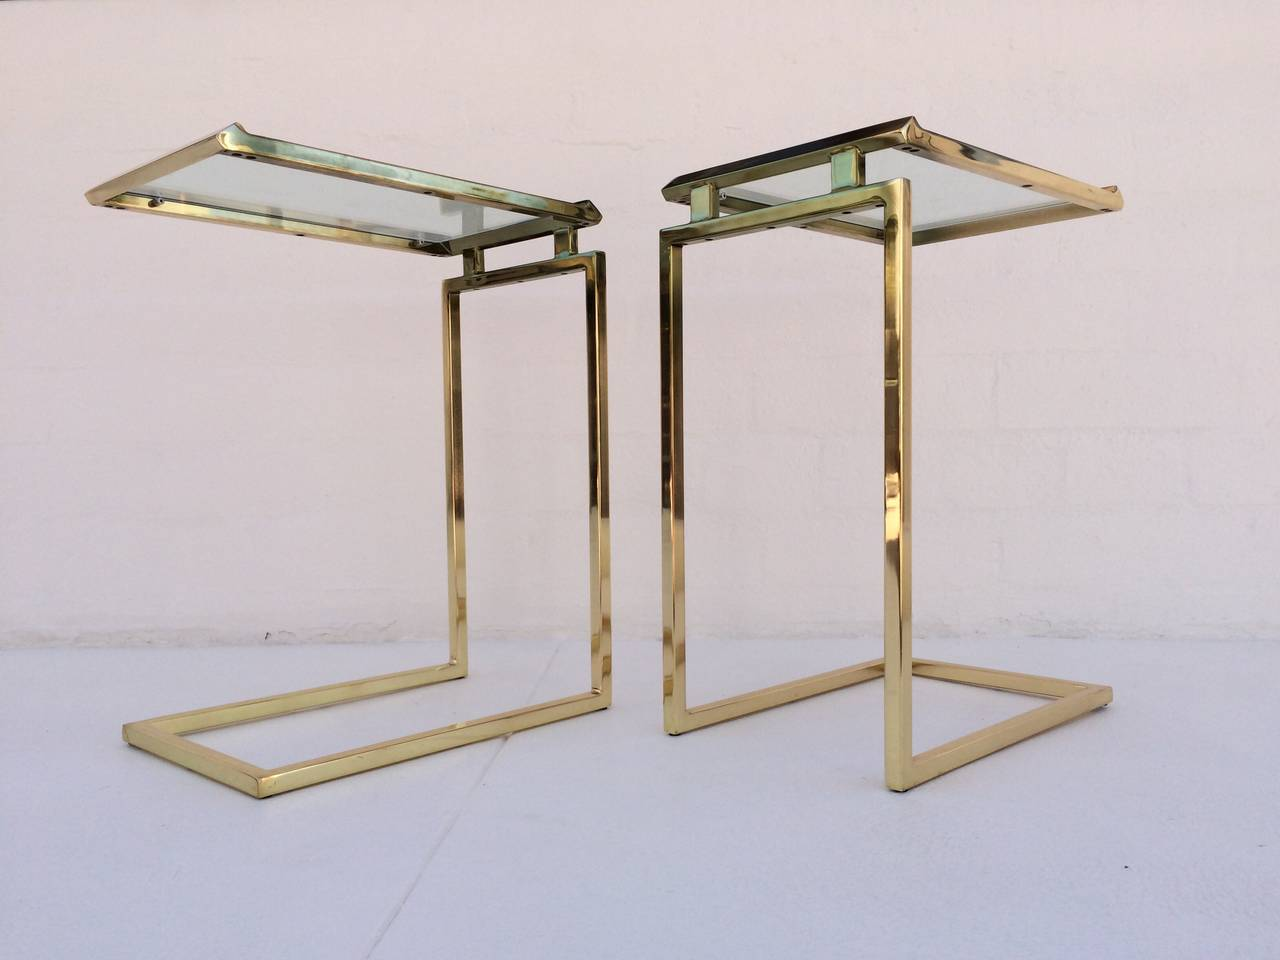 buy online eb4c3 07b08 Pair of Polished Brass and Glass Side Tables Designed by ...